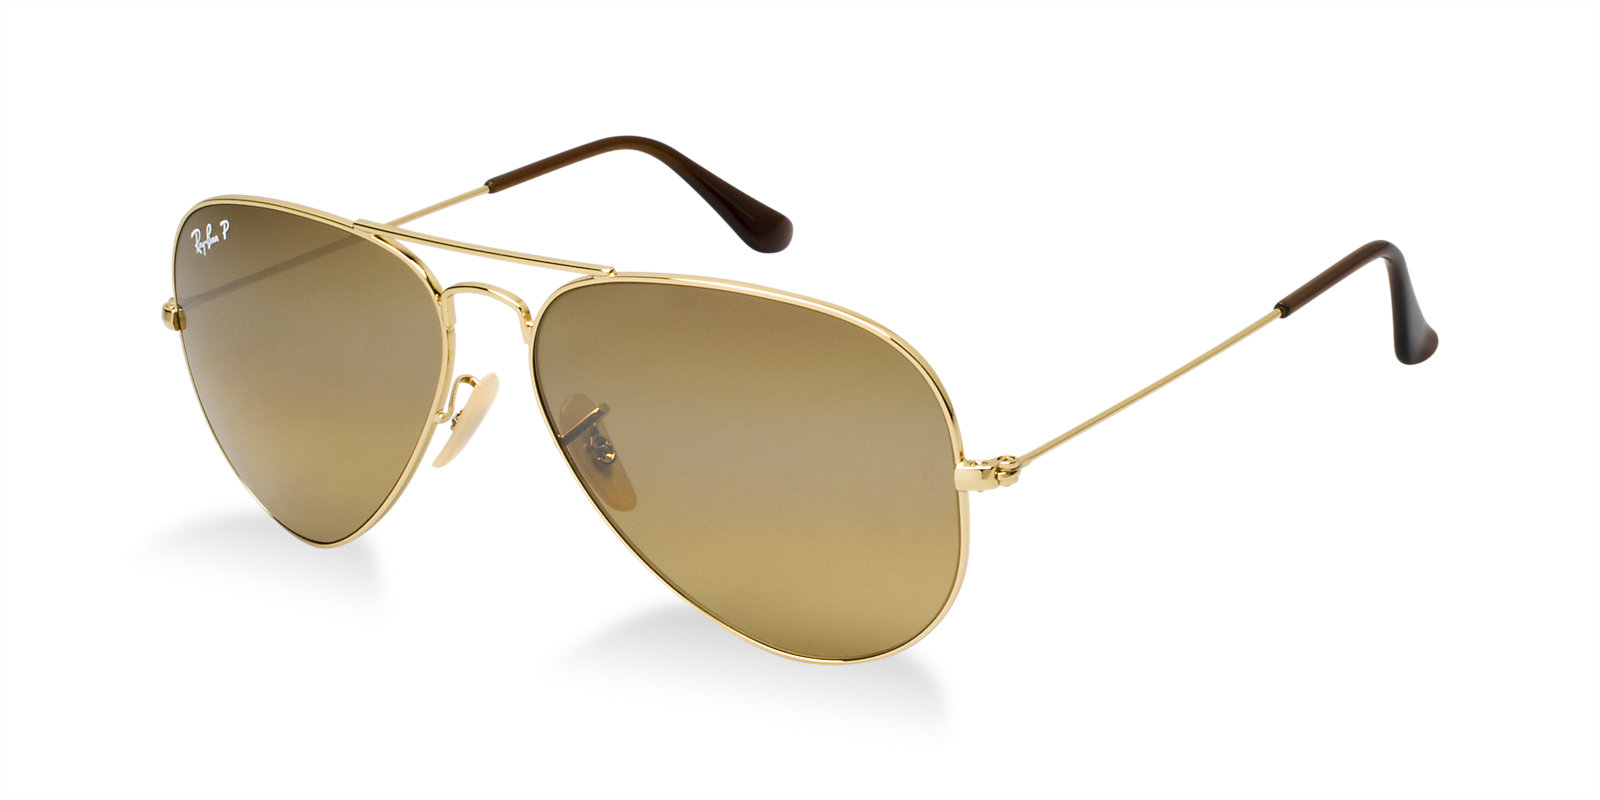 c84aeda8f6 Previous  Next. Previous  Next. RAY-BAN RB3025 001 57 GOLD POLARIZED AVIATOR  SUNGLASSES